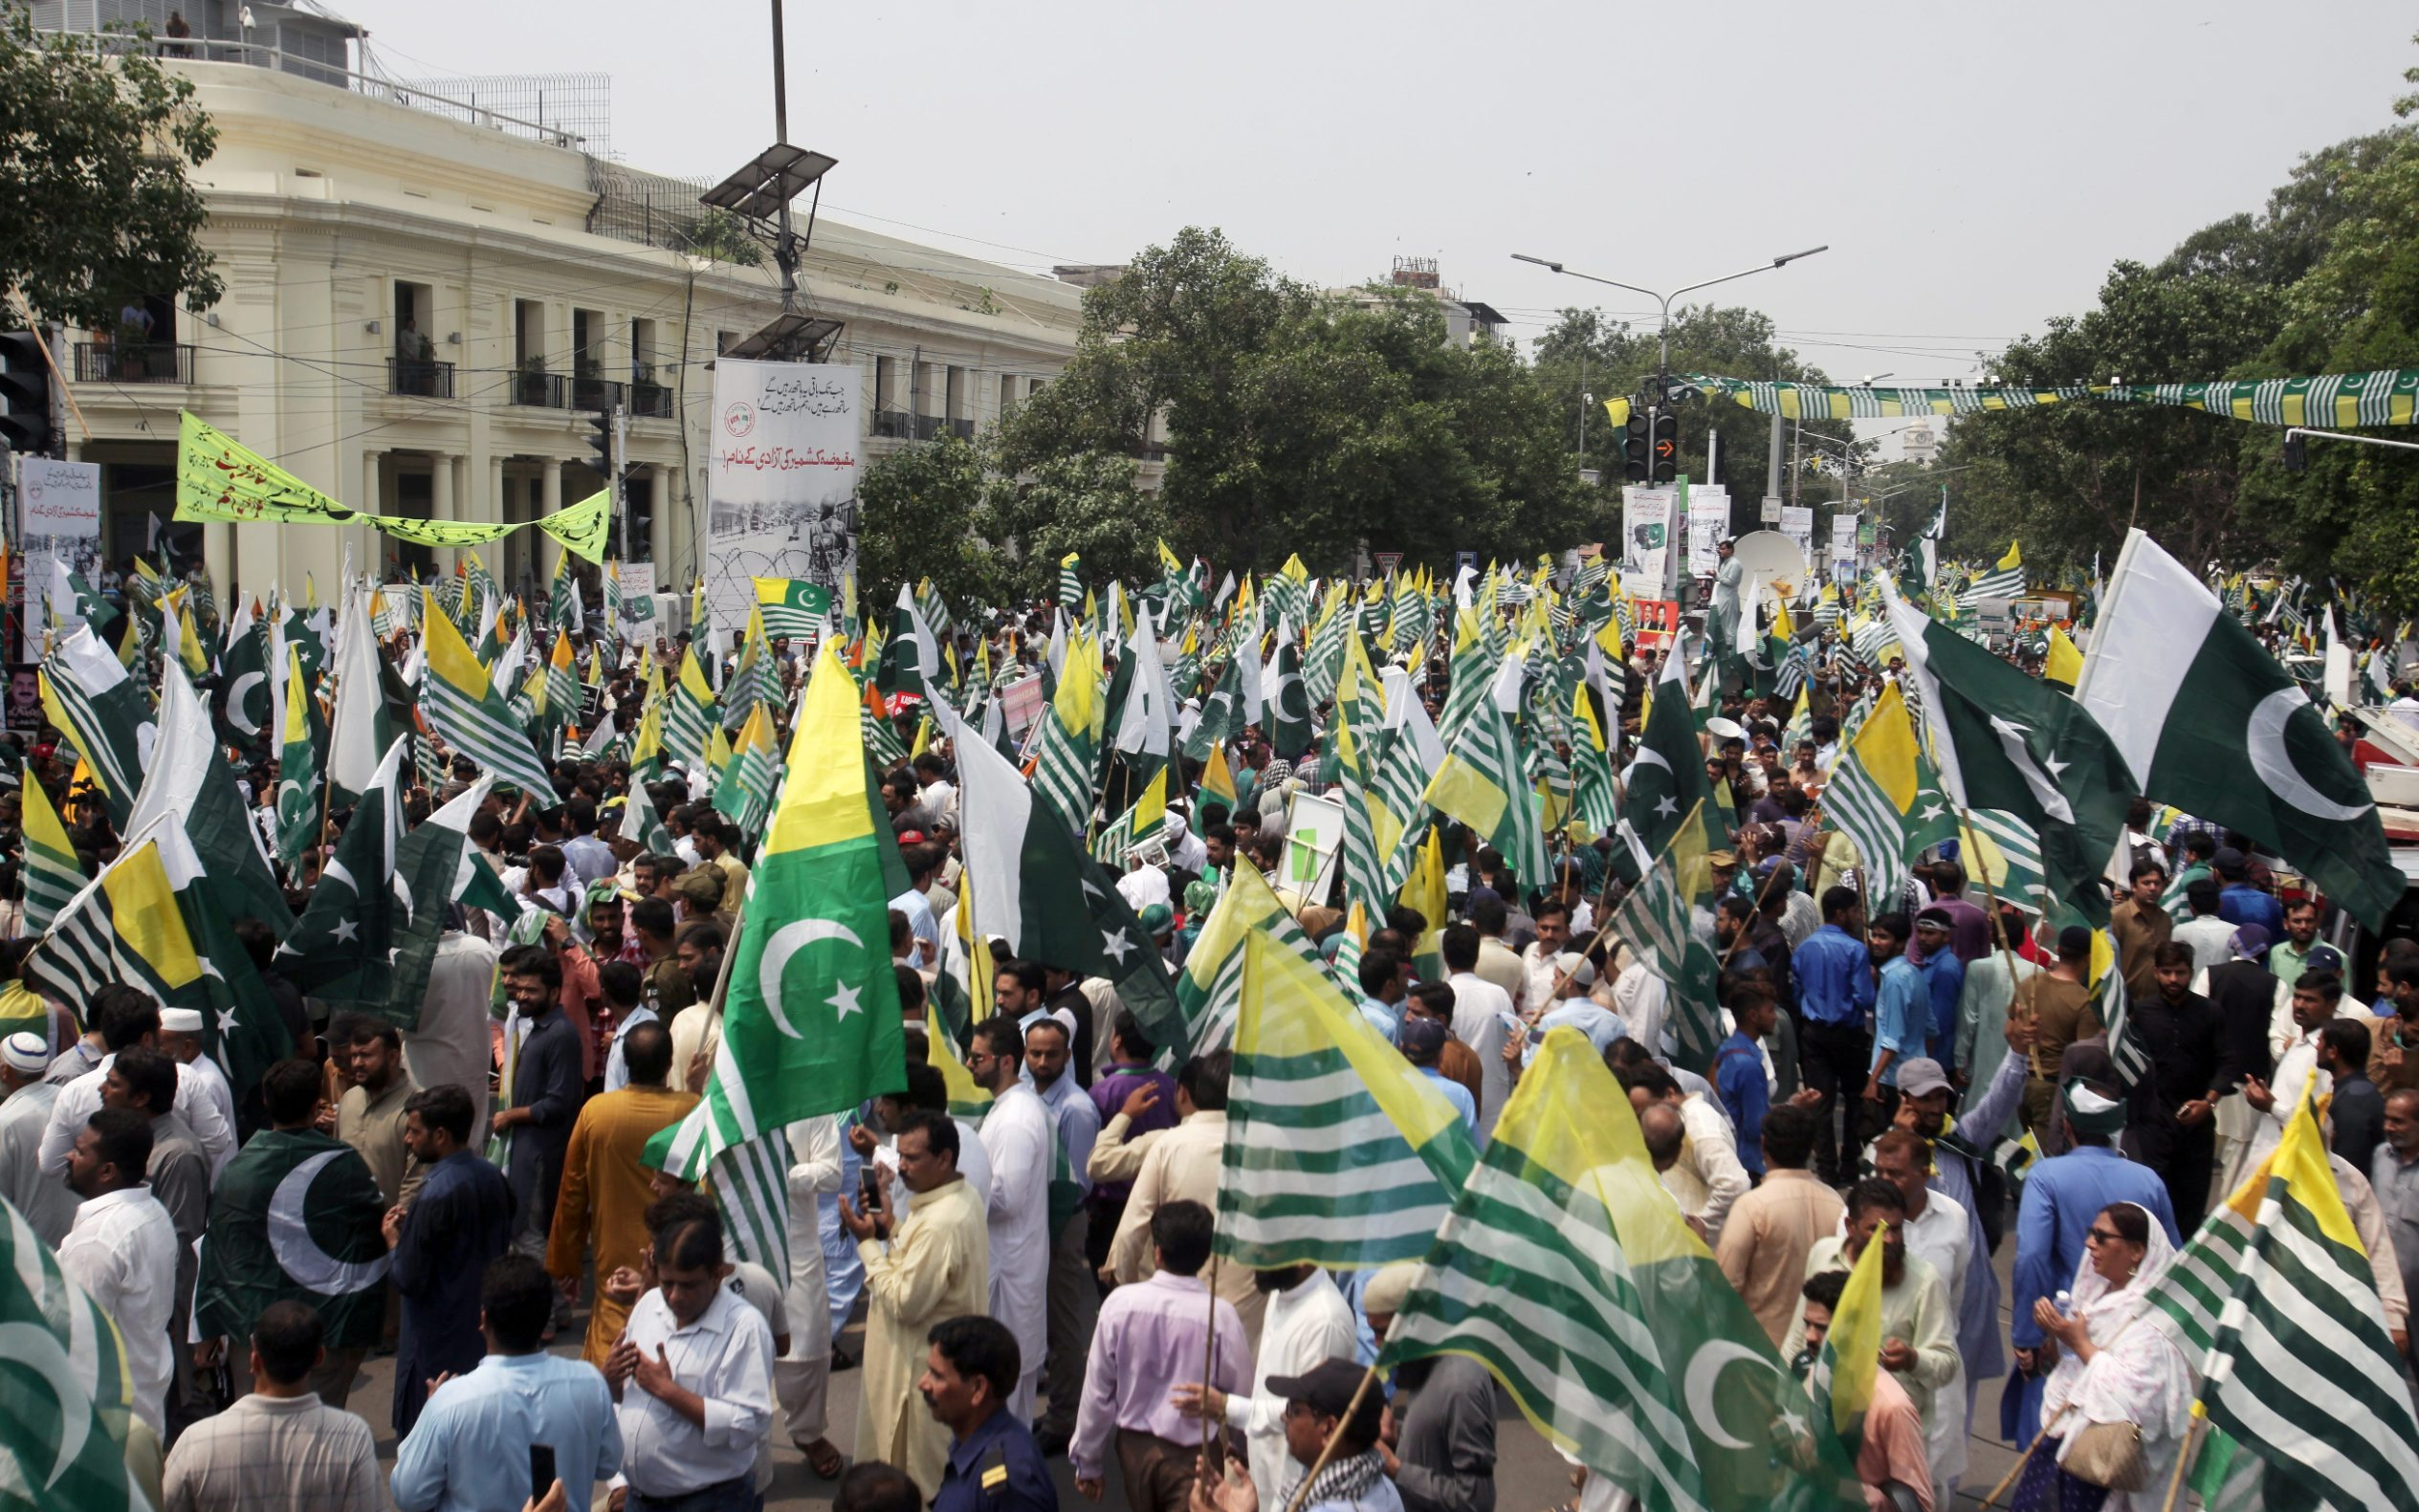 People carrying flags of Pakistan and Azad Kashmir, pray during a countrywide 'Kashmir Hour' demonstration to express solidarity with the people of Kashmir, observing a call by Prime Minister Imran Khan in Lahore, Pakistan August 30, 2019. REUTERS/Mohsin Raza